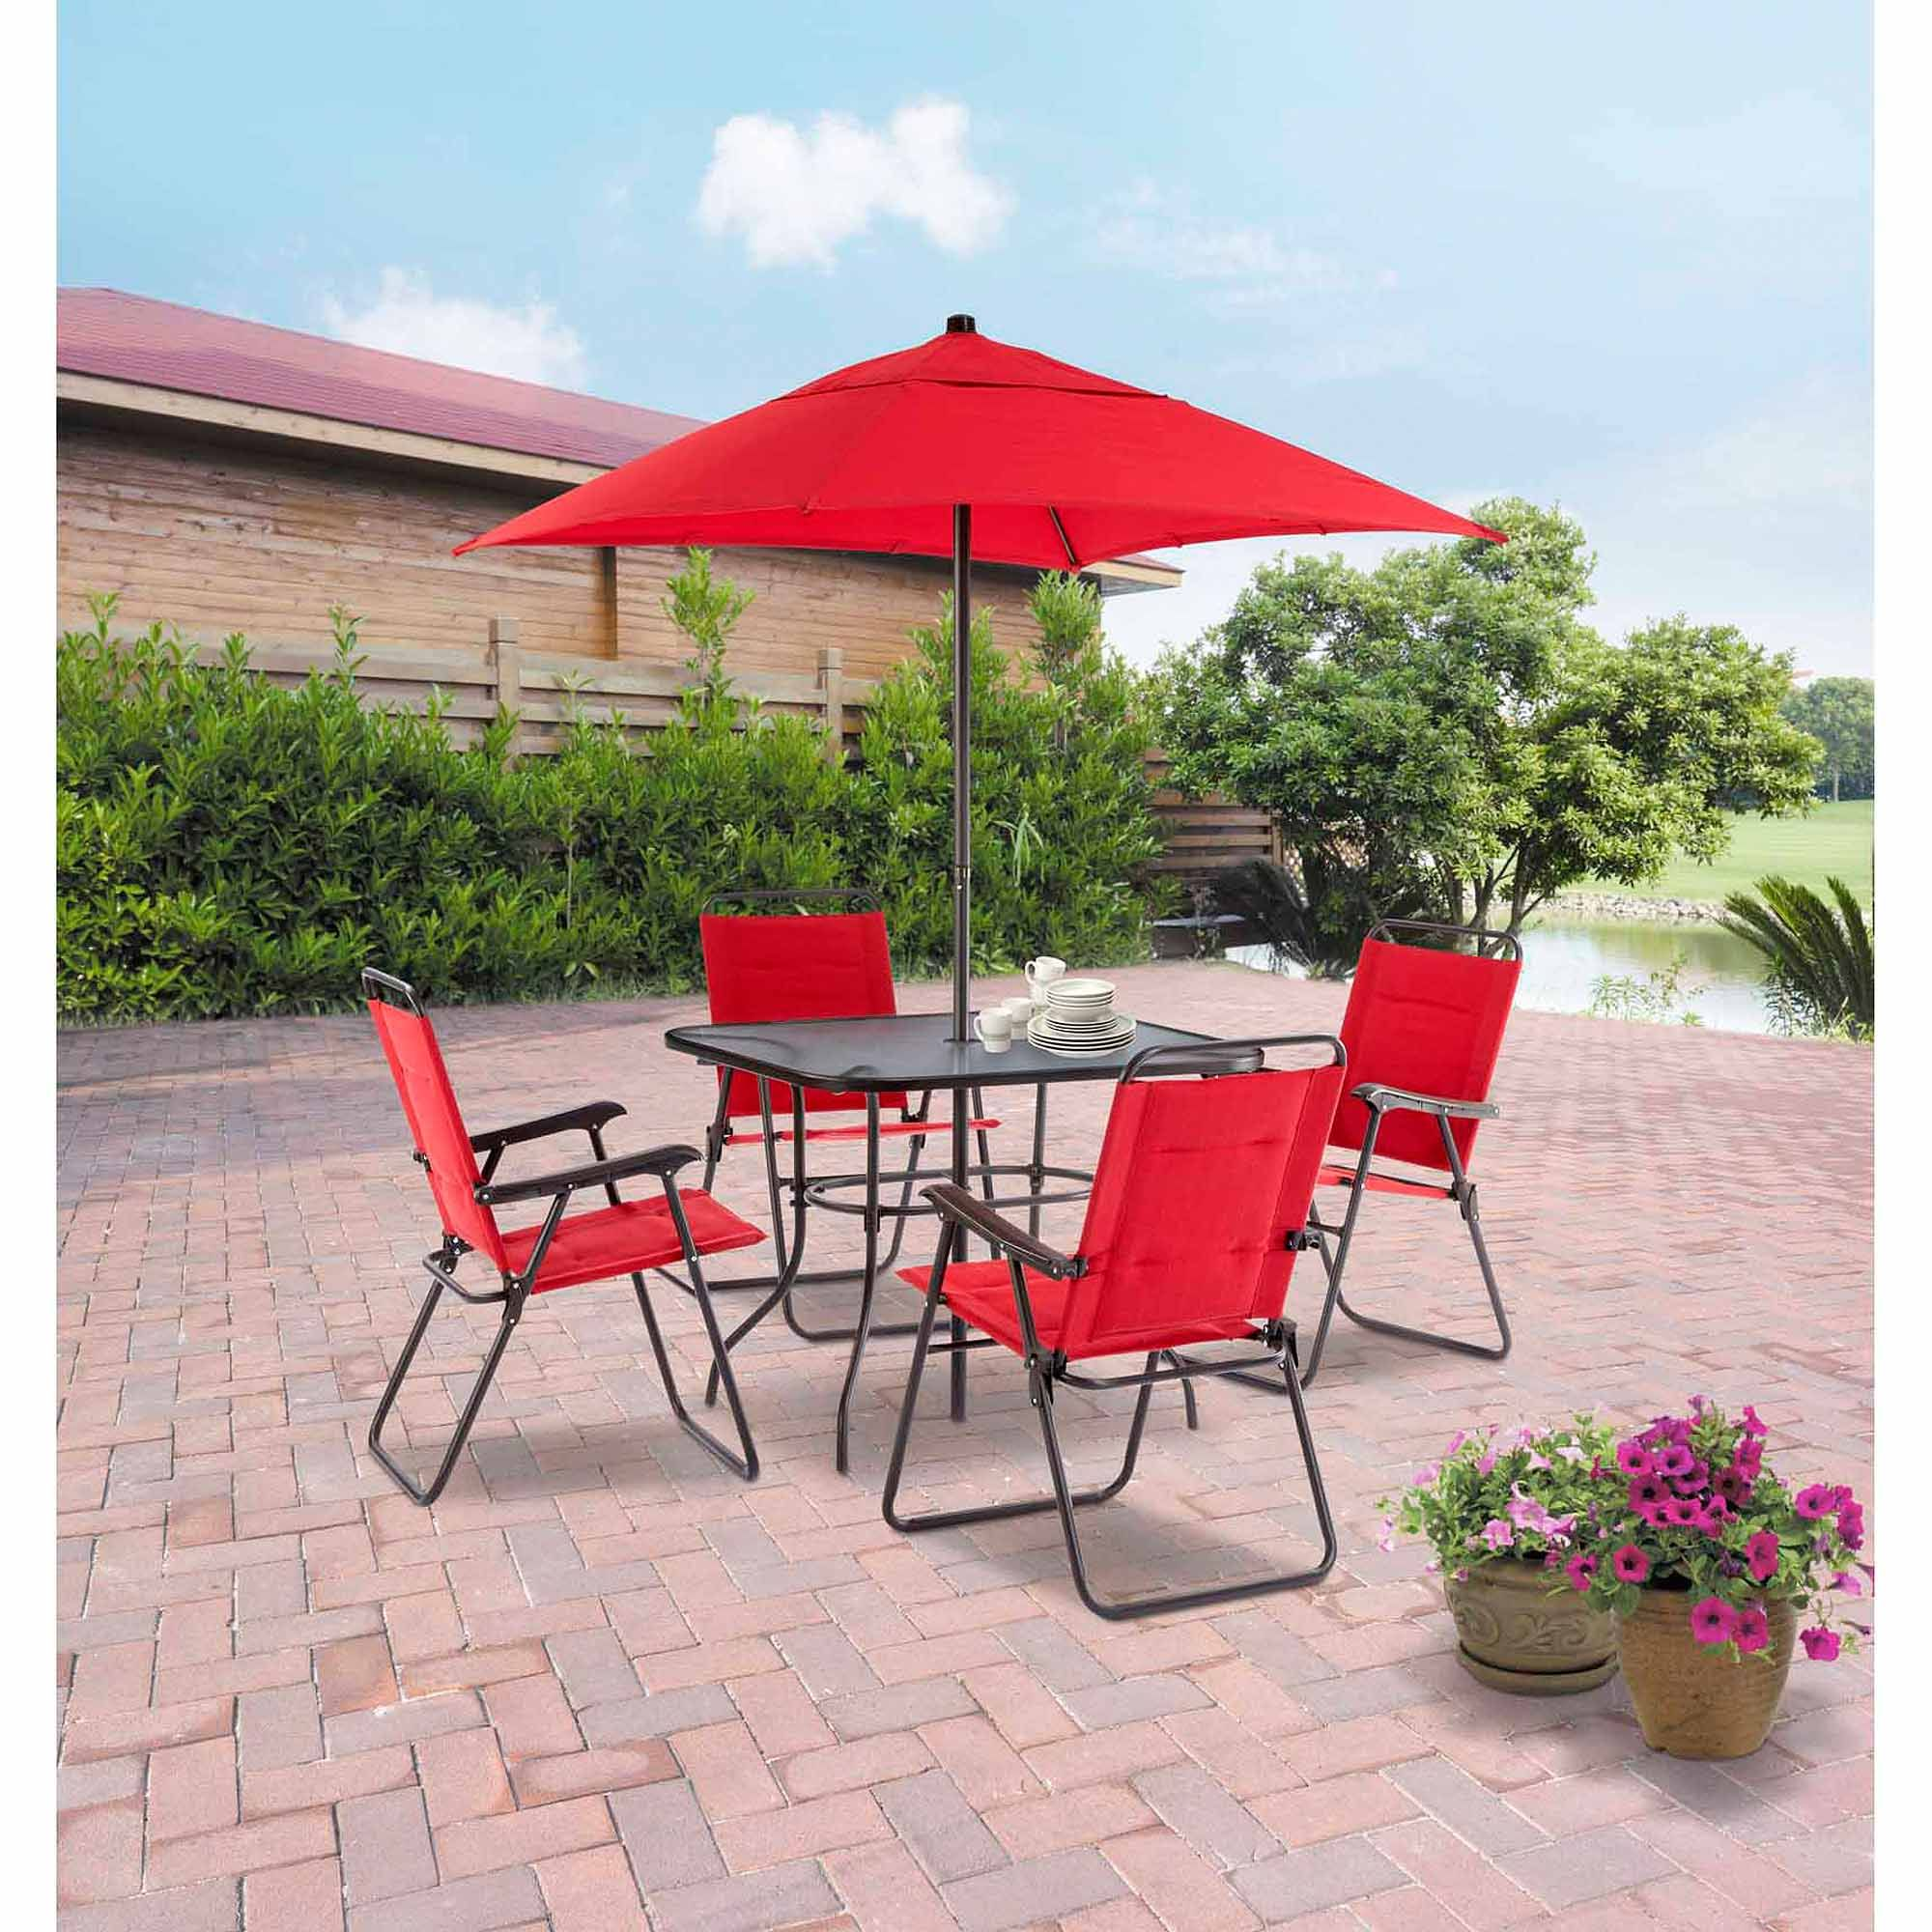 Walmart Outdoor Table And Chairs Visit More At Http Adazed Com Walmart Outdoor Table And Chairs 44030 Outdoor Patio Set Outdoor Patio Decor Patio